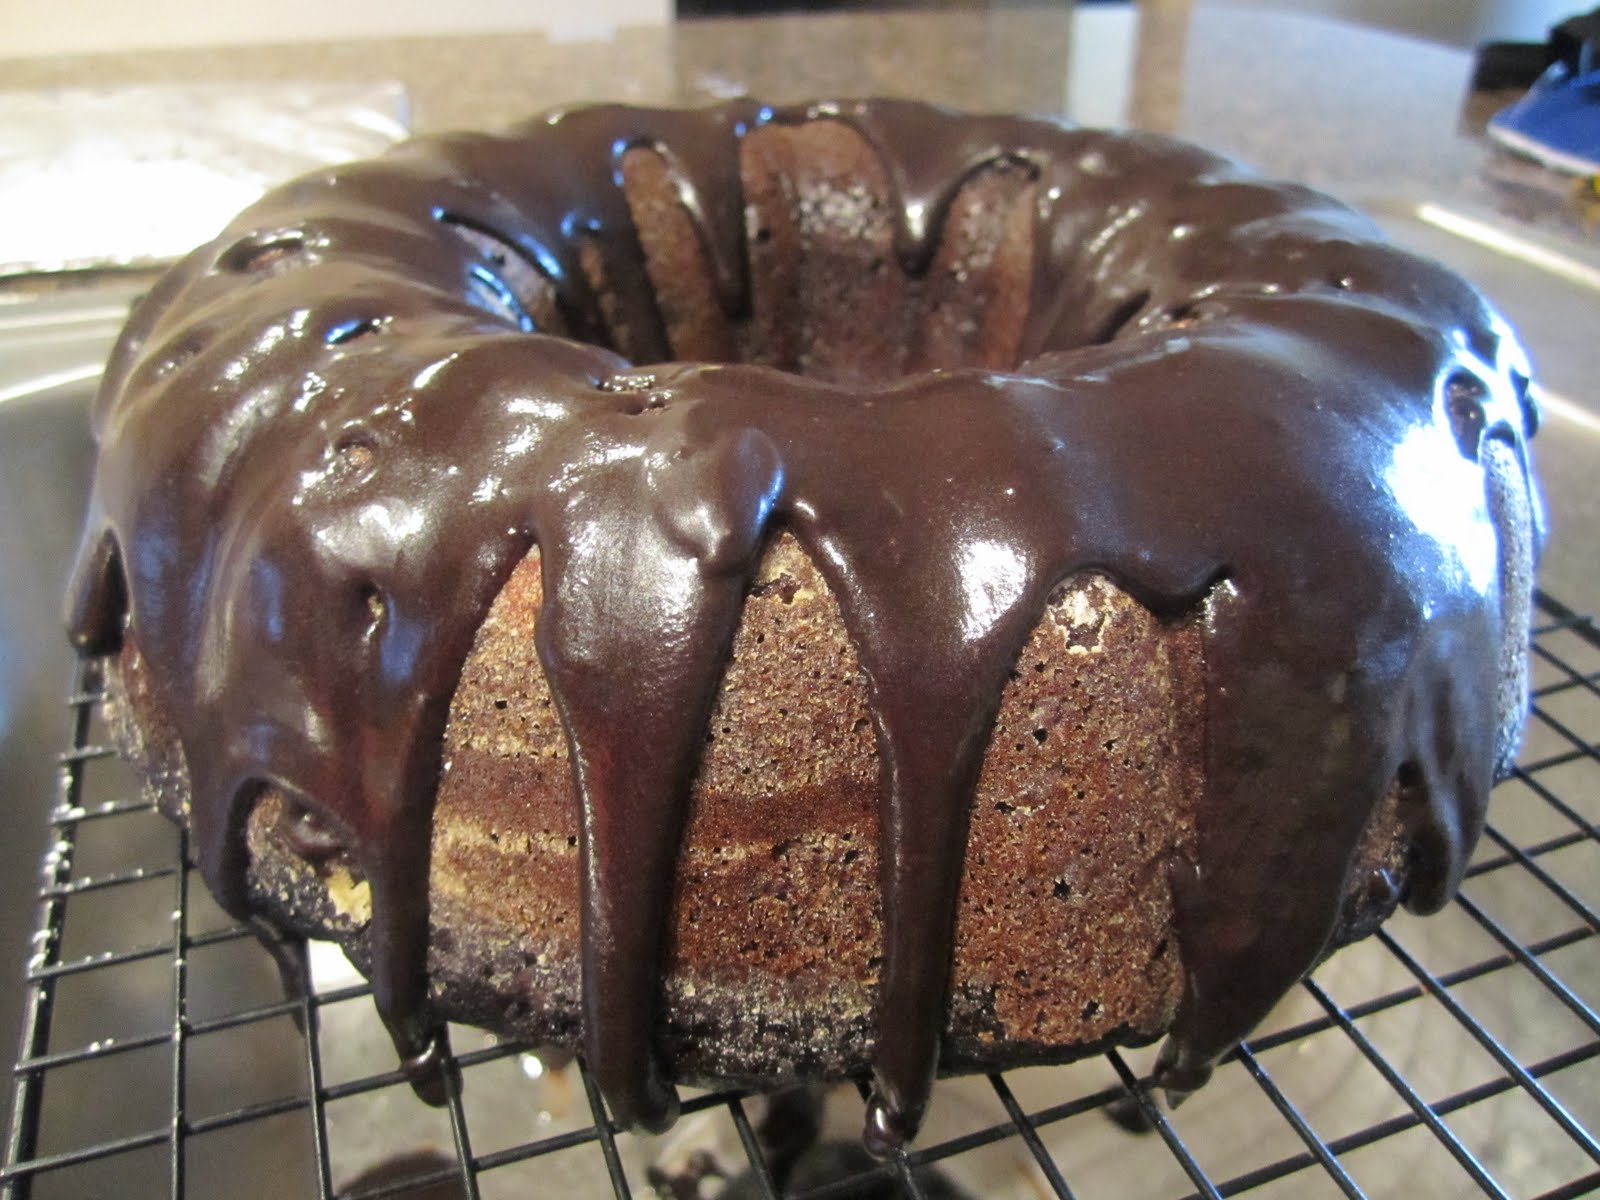 MIZZ's Culinary Creation: Chocolate Banana Bundt Cake